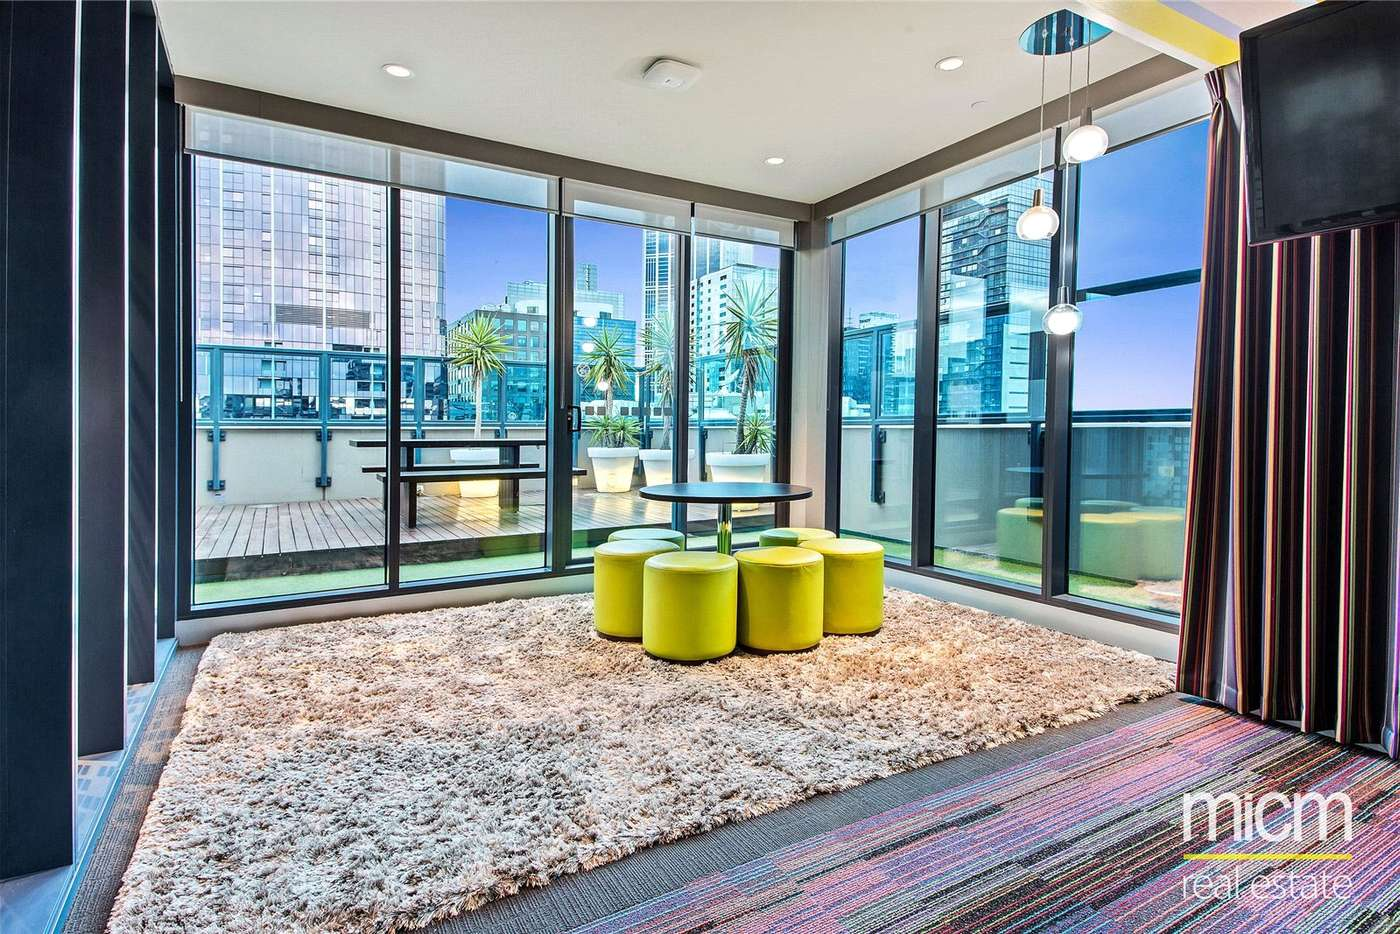 Seventh view of Homely studio listing, 301/181 ABeckett Street, Melbourne VIC 3000